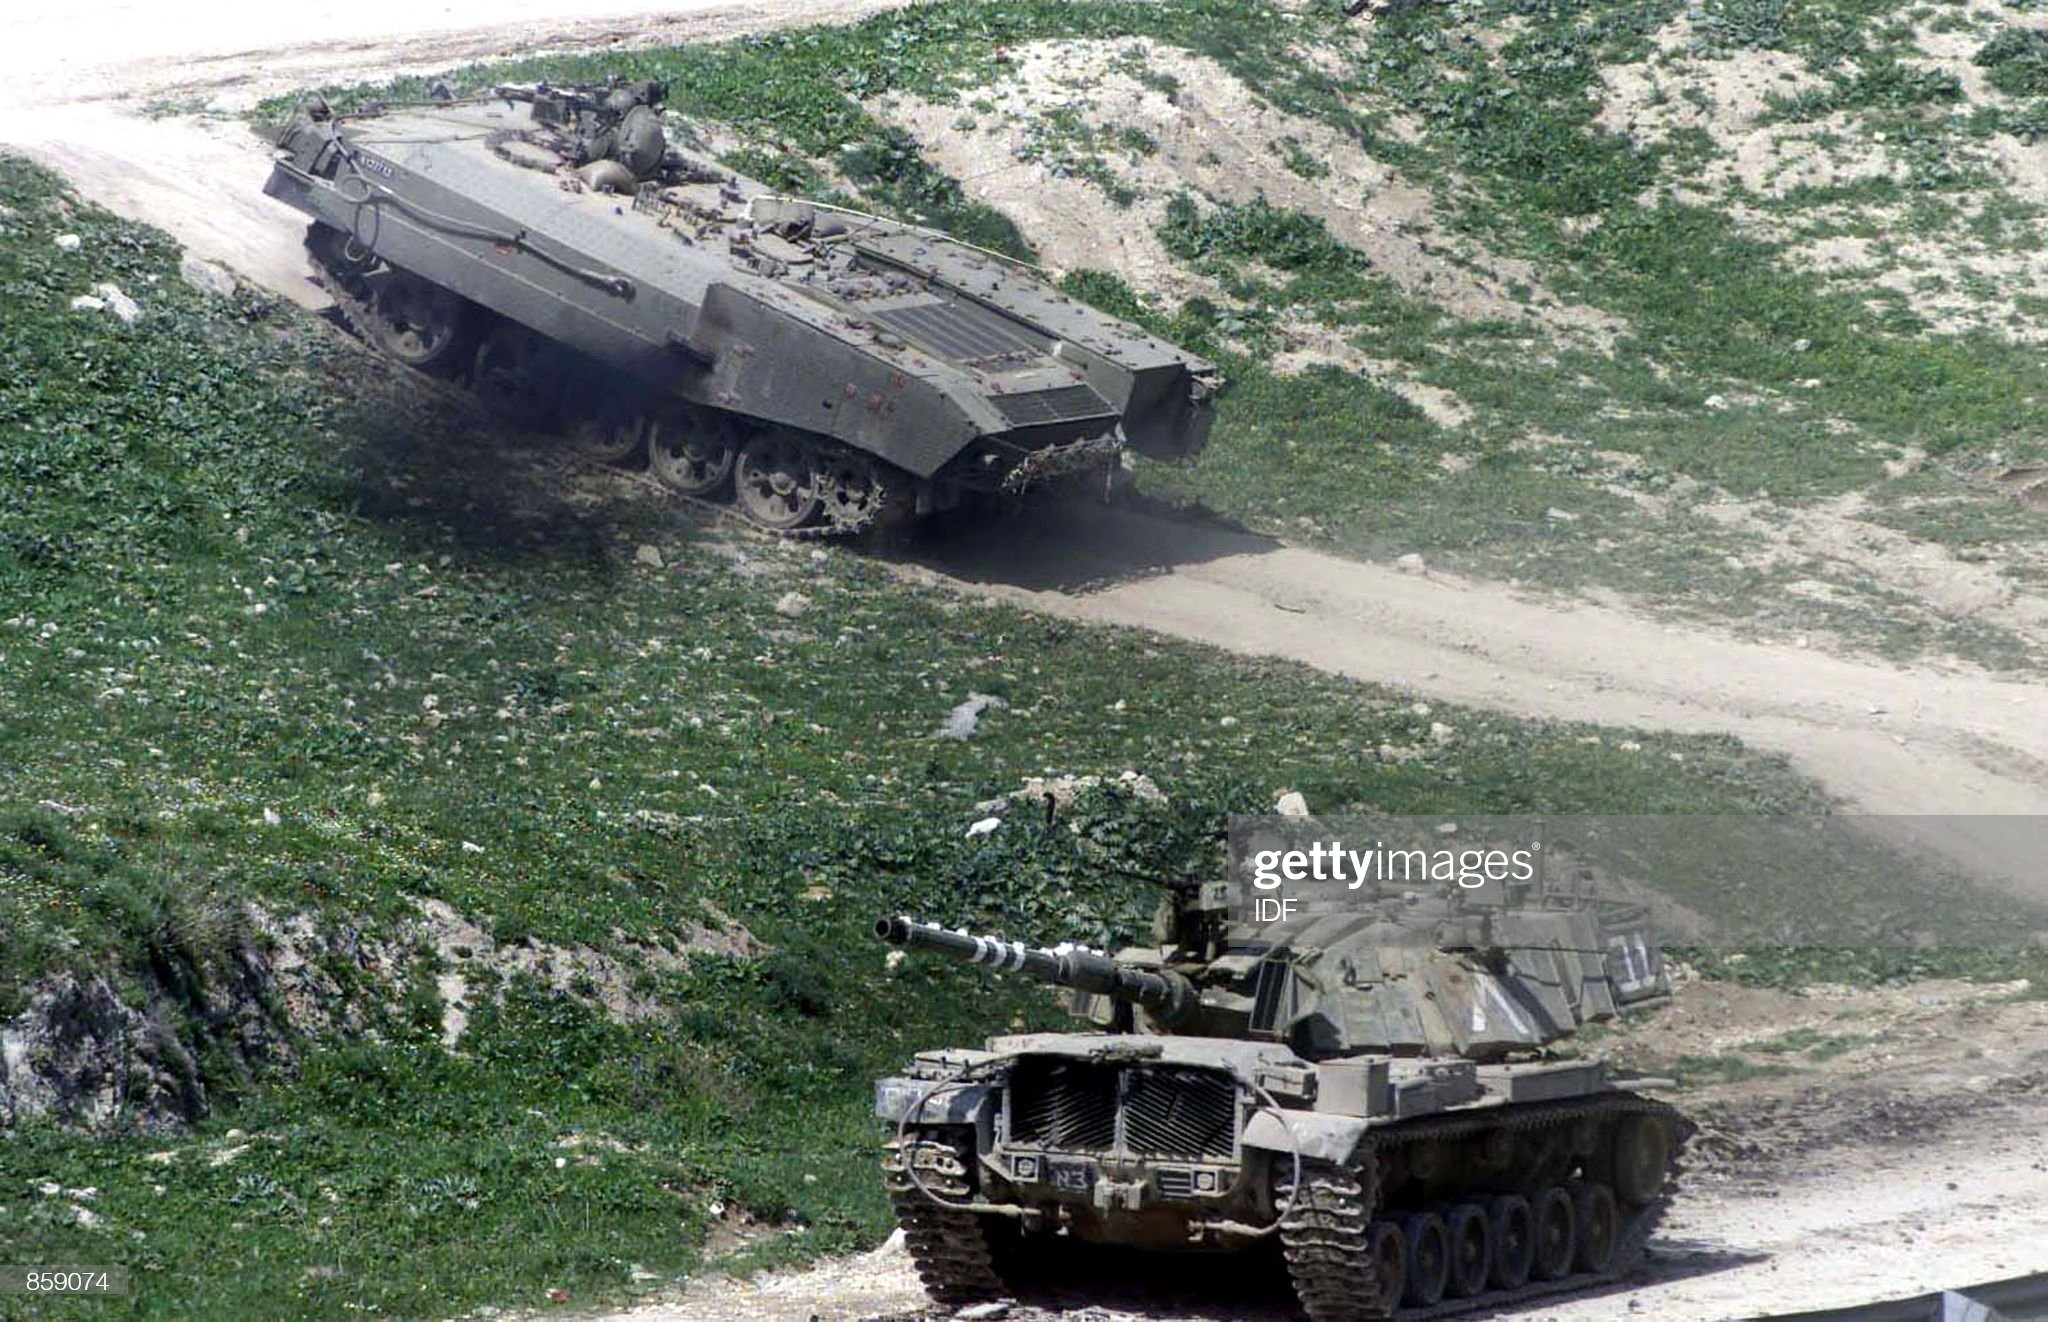 https://media.gettyimages.com/photos/an-israeli-tank-and-an-armored-personnel-carrier-enter-the-west-bank-picture-id859074?s=2048x2048